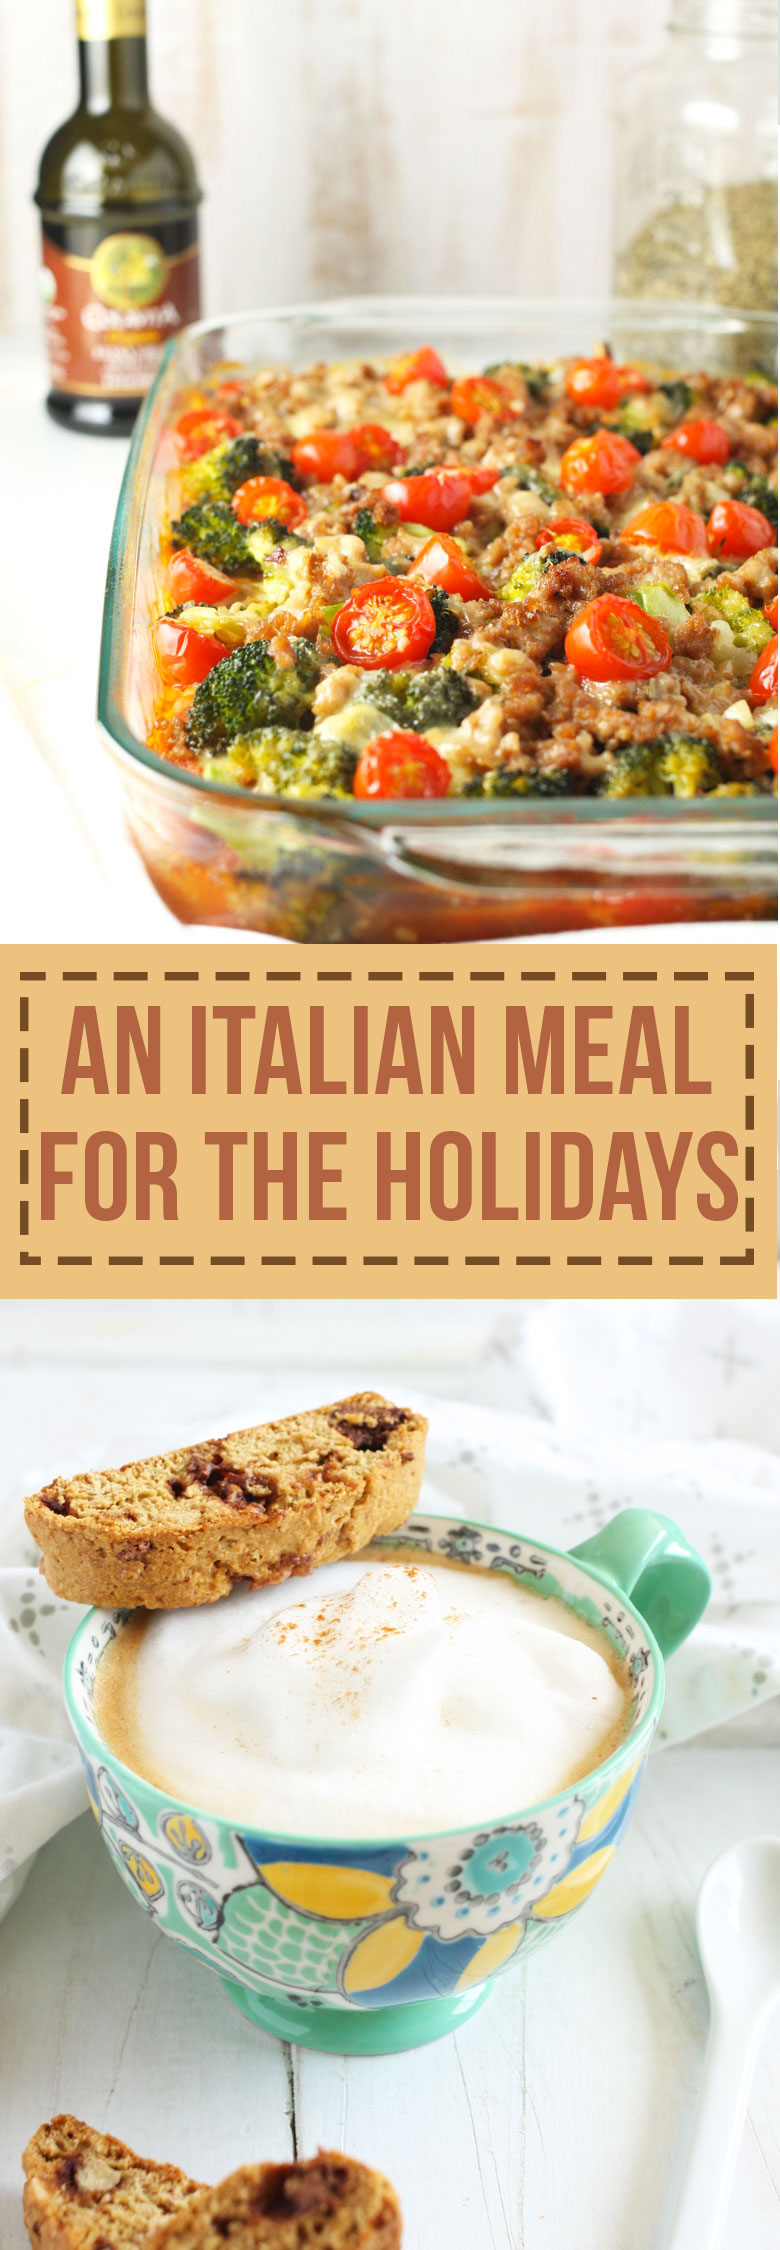 A Healthier Italian Meal for the Holidays // 24 Carrot Life #sponsored #JoinTheTable #Perugina @colavitaevoo #polenta #italian